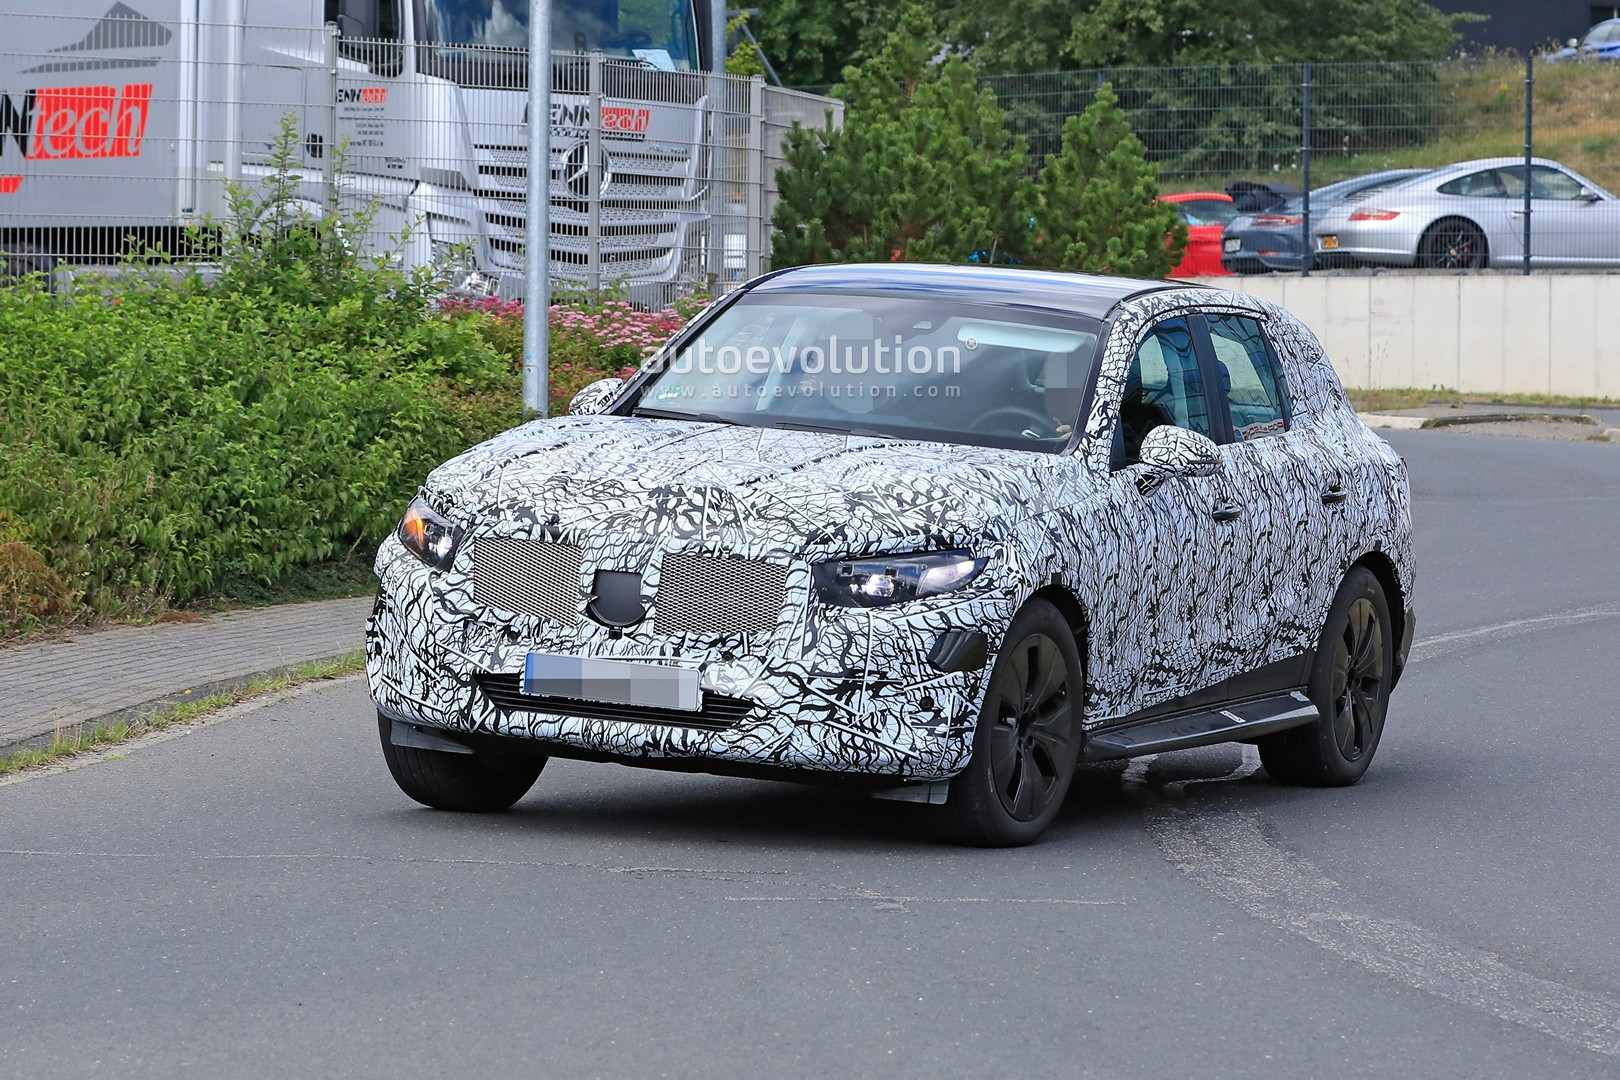 2021 - [Mercedes-Benz] GLC II - Page 2 All-new-2022-mercedes-glc-class-spied-getting-to-be-the-king-of-cuvs_13